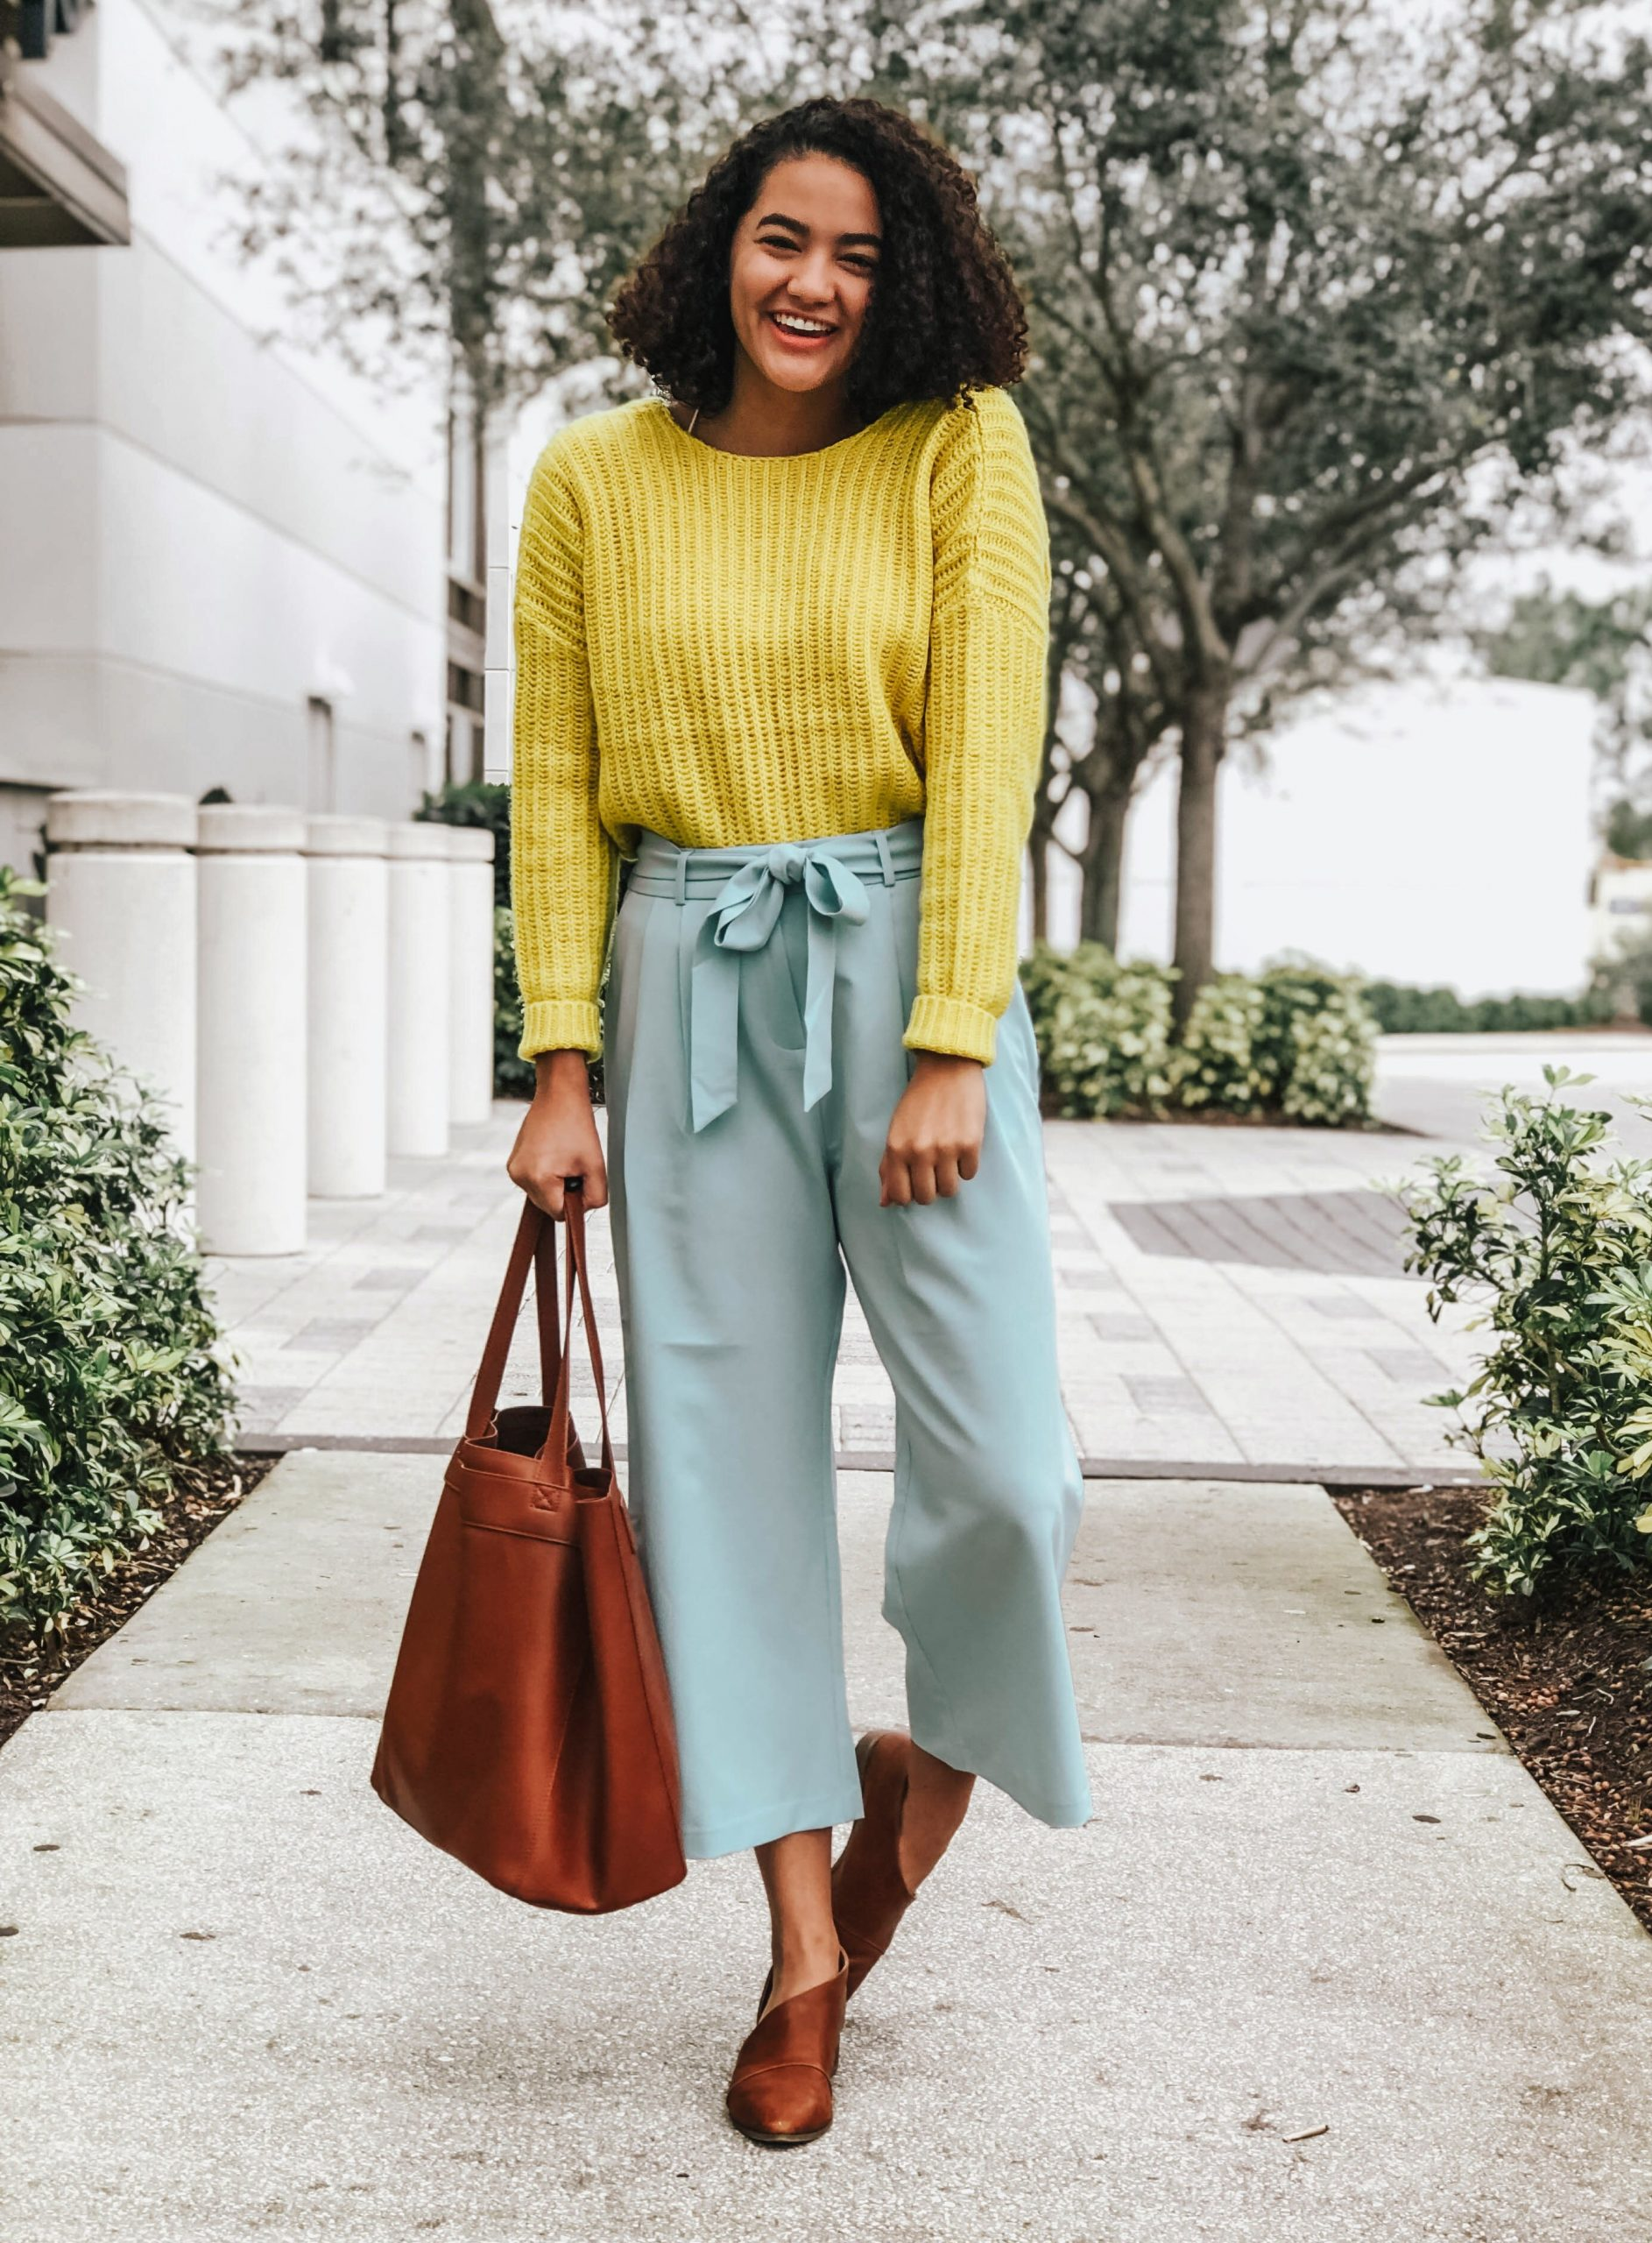 ASOS Design Yellow Sweater and Blue Culottes Looks